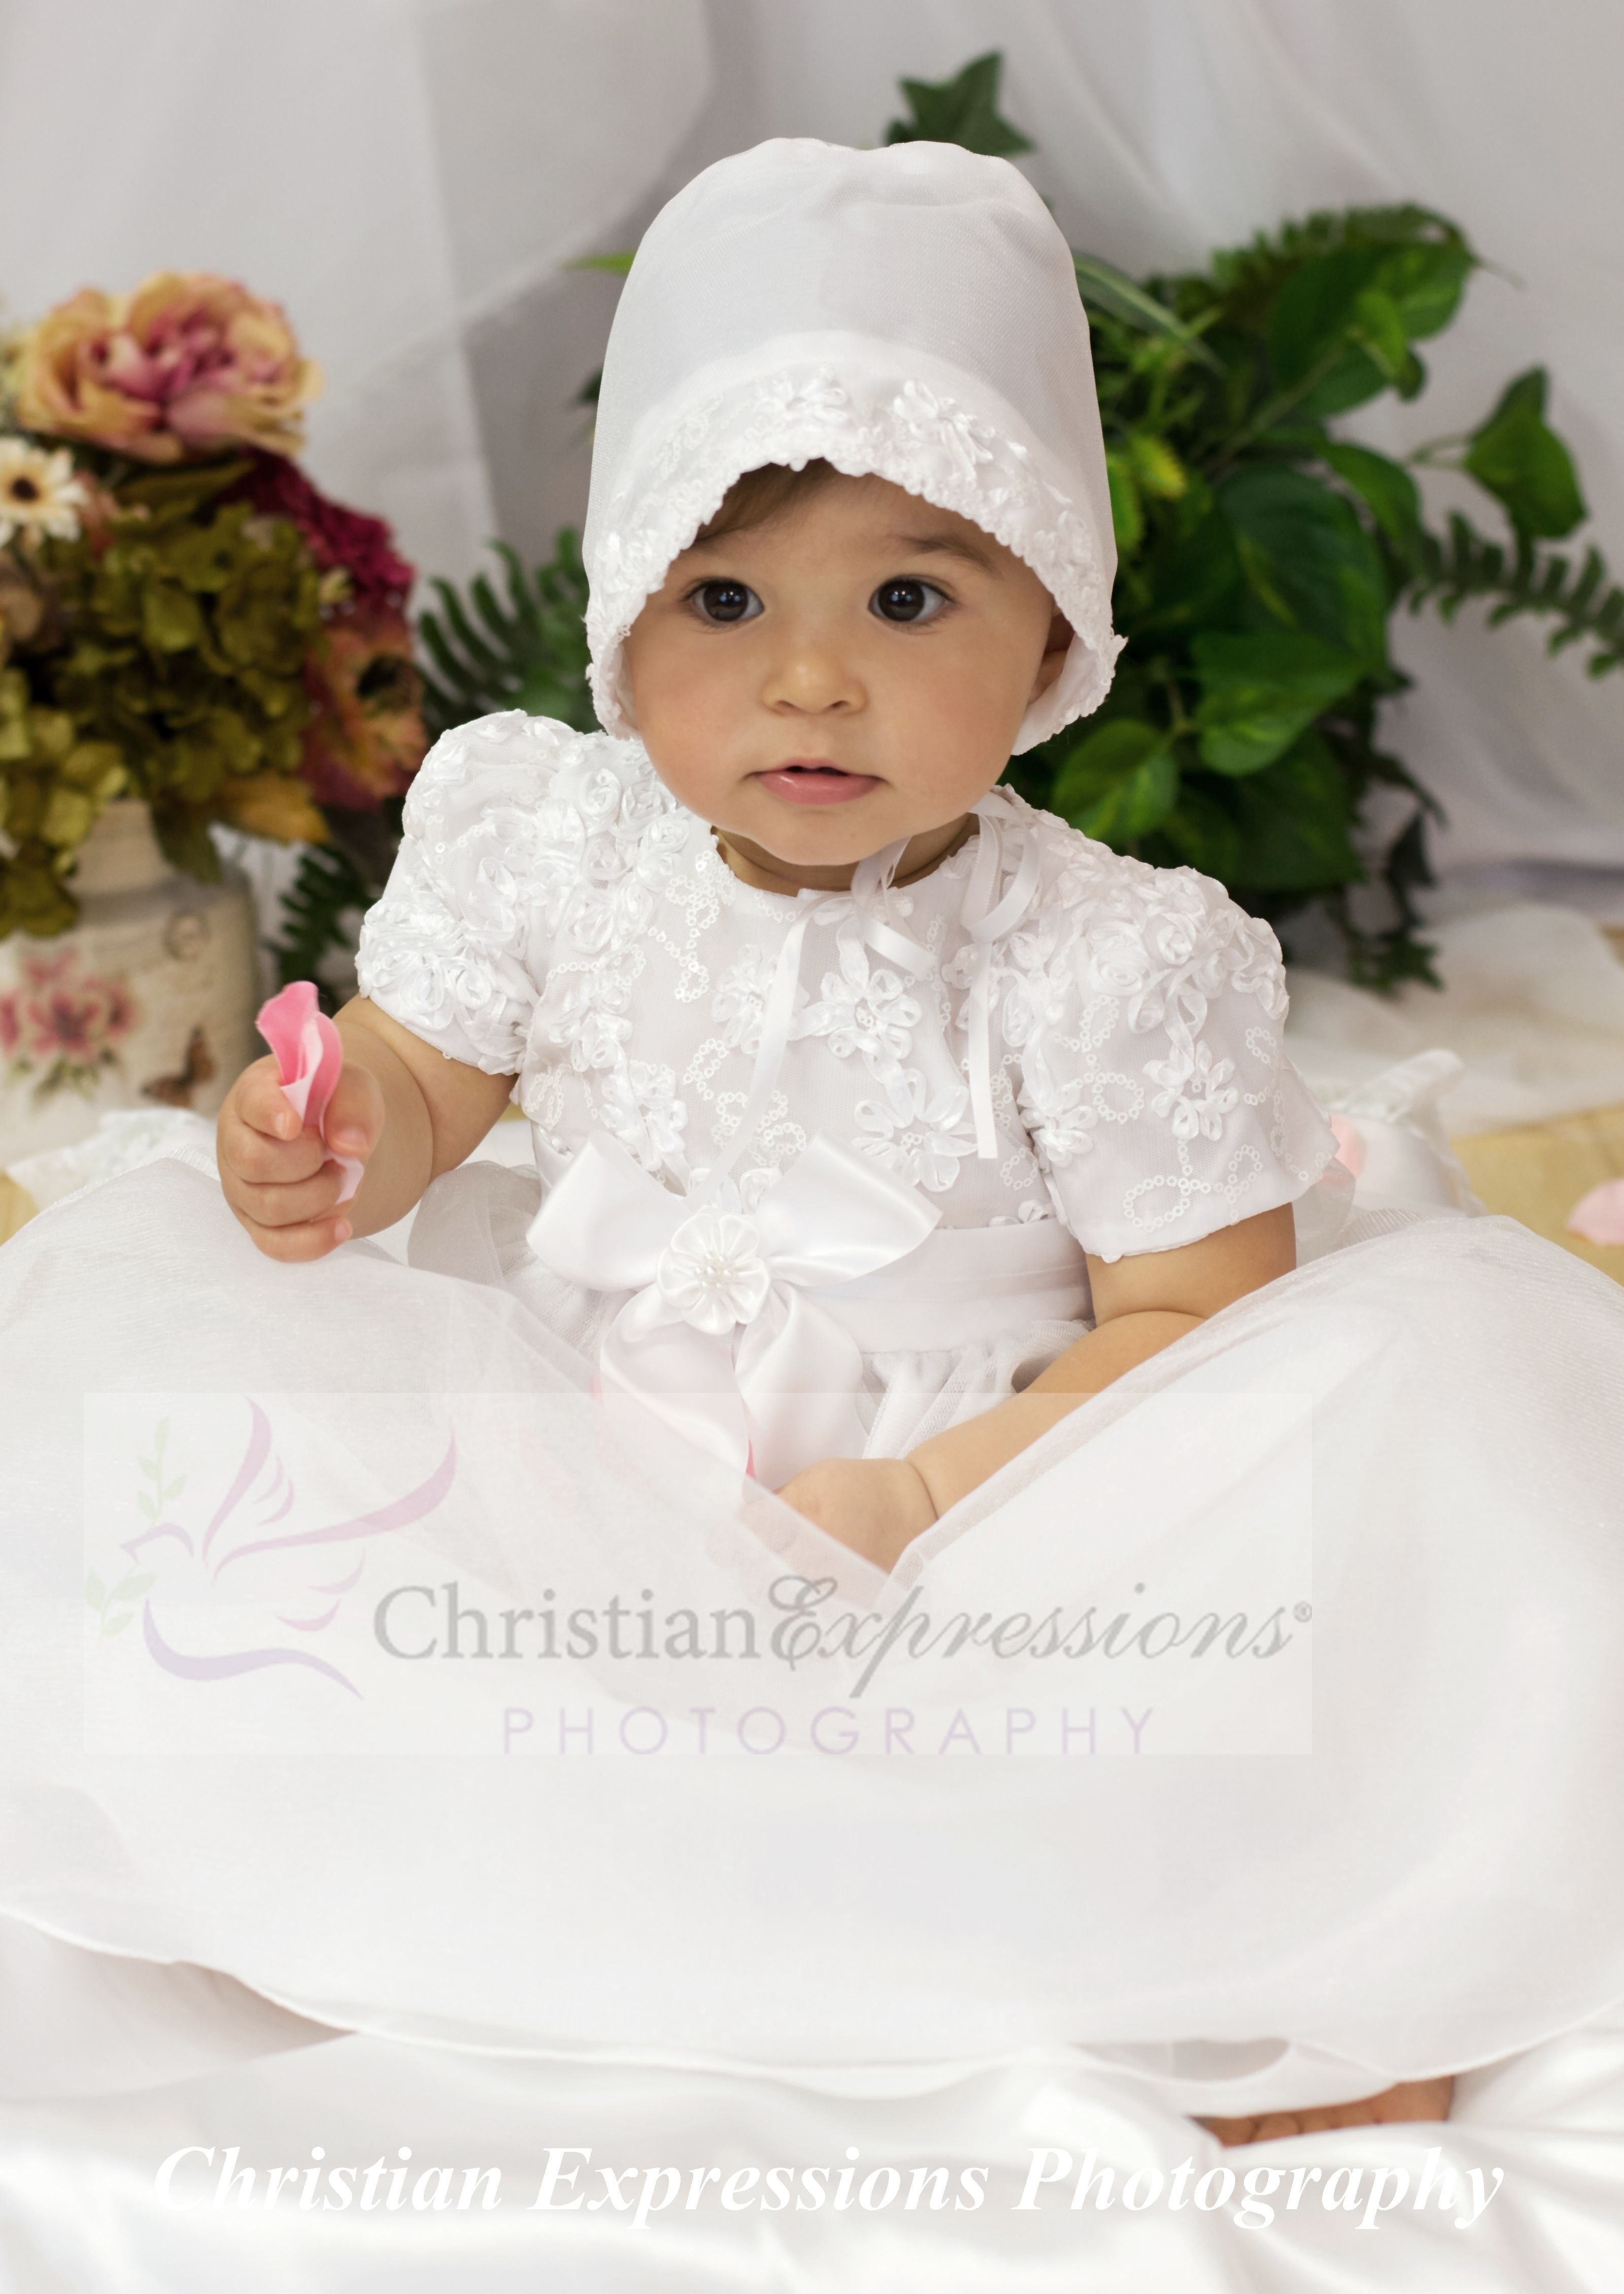 c6cc10d94 This adorable baby girl is getting her christening pictures taken at  Christian Expressions. The christening gown was purchased in our showroom  Christian ...